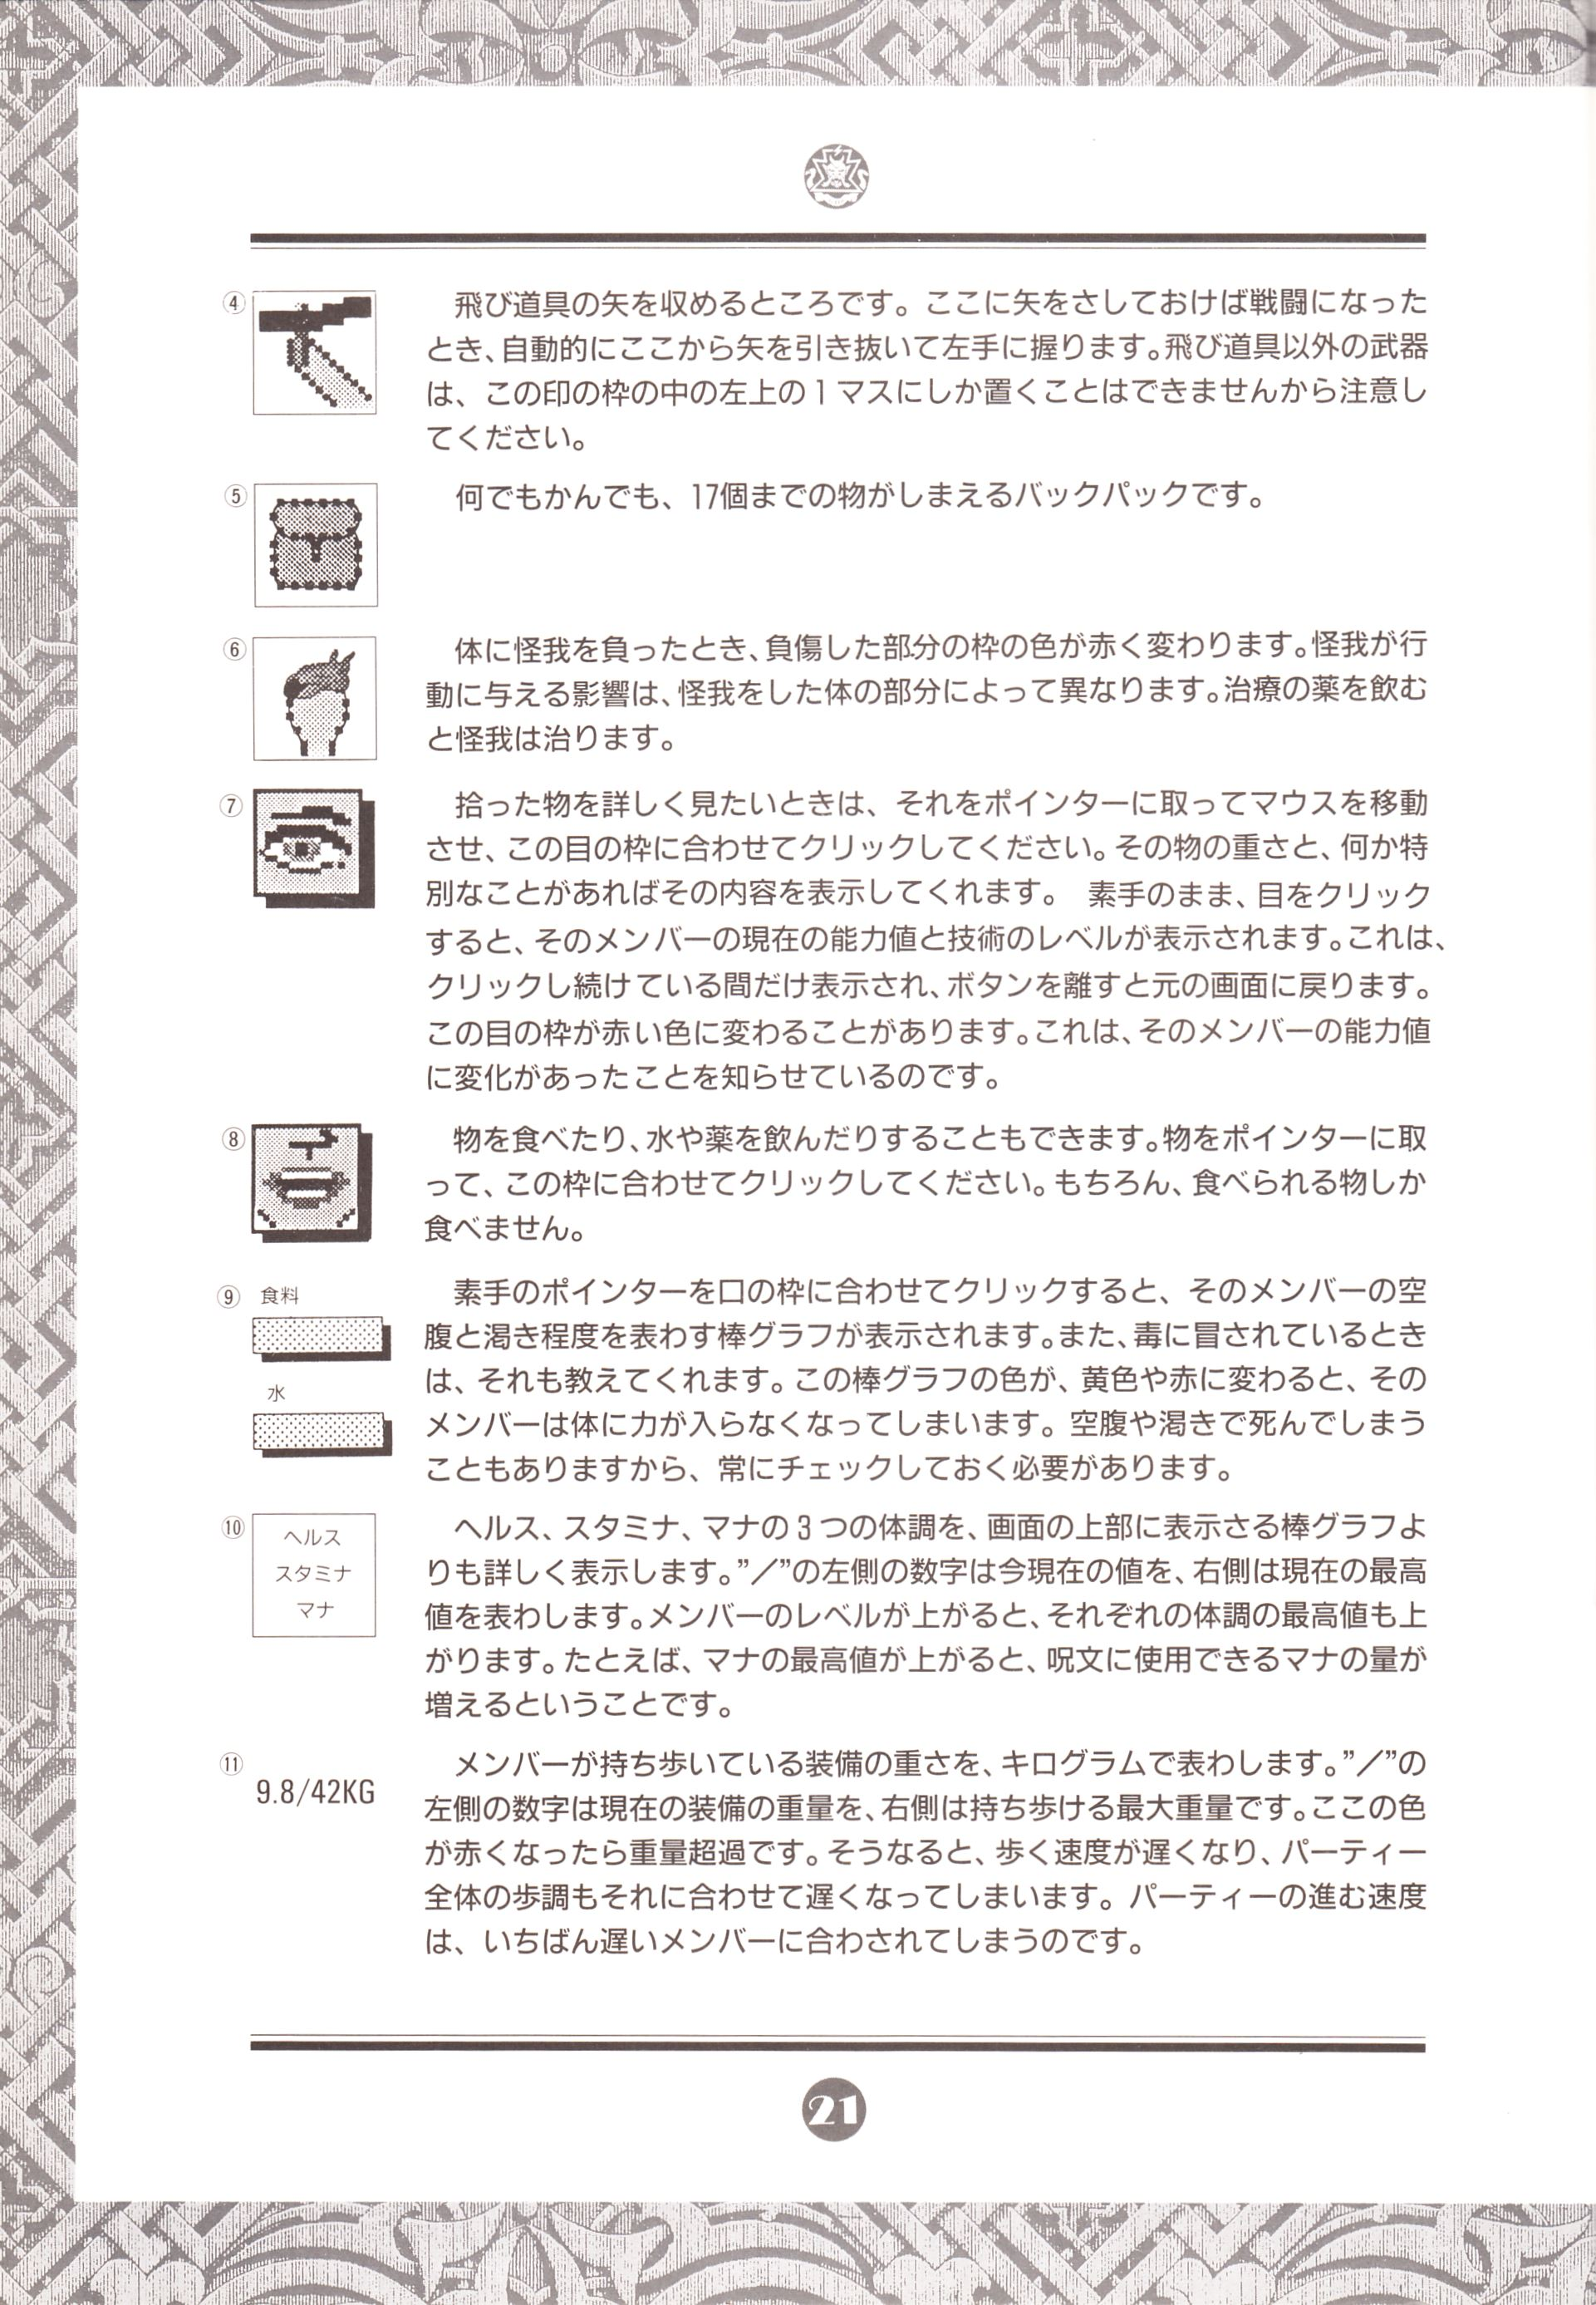 Game - Chaos Strikes Back - JP - PC-9801 - 3-5-inch - An Operation Manual - Page 024 - Scan